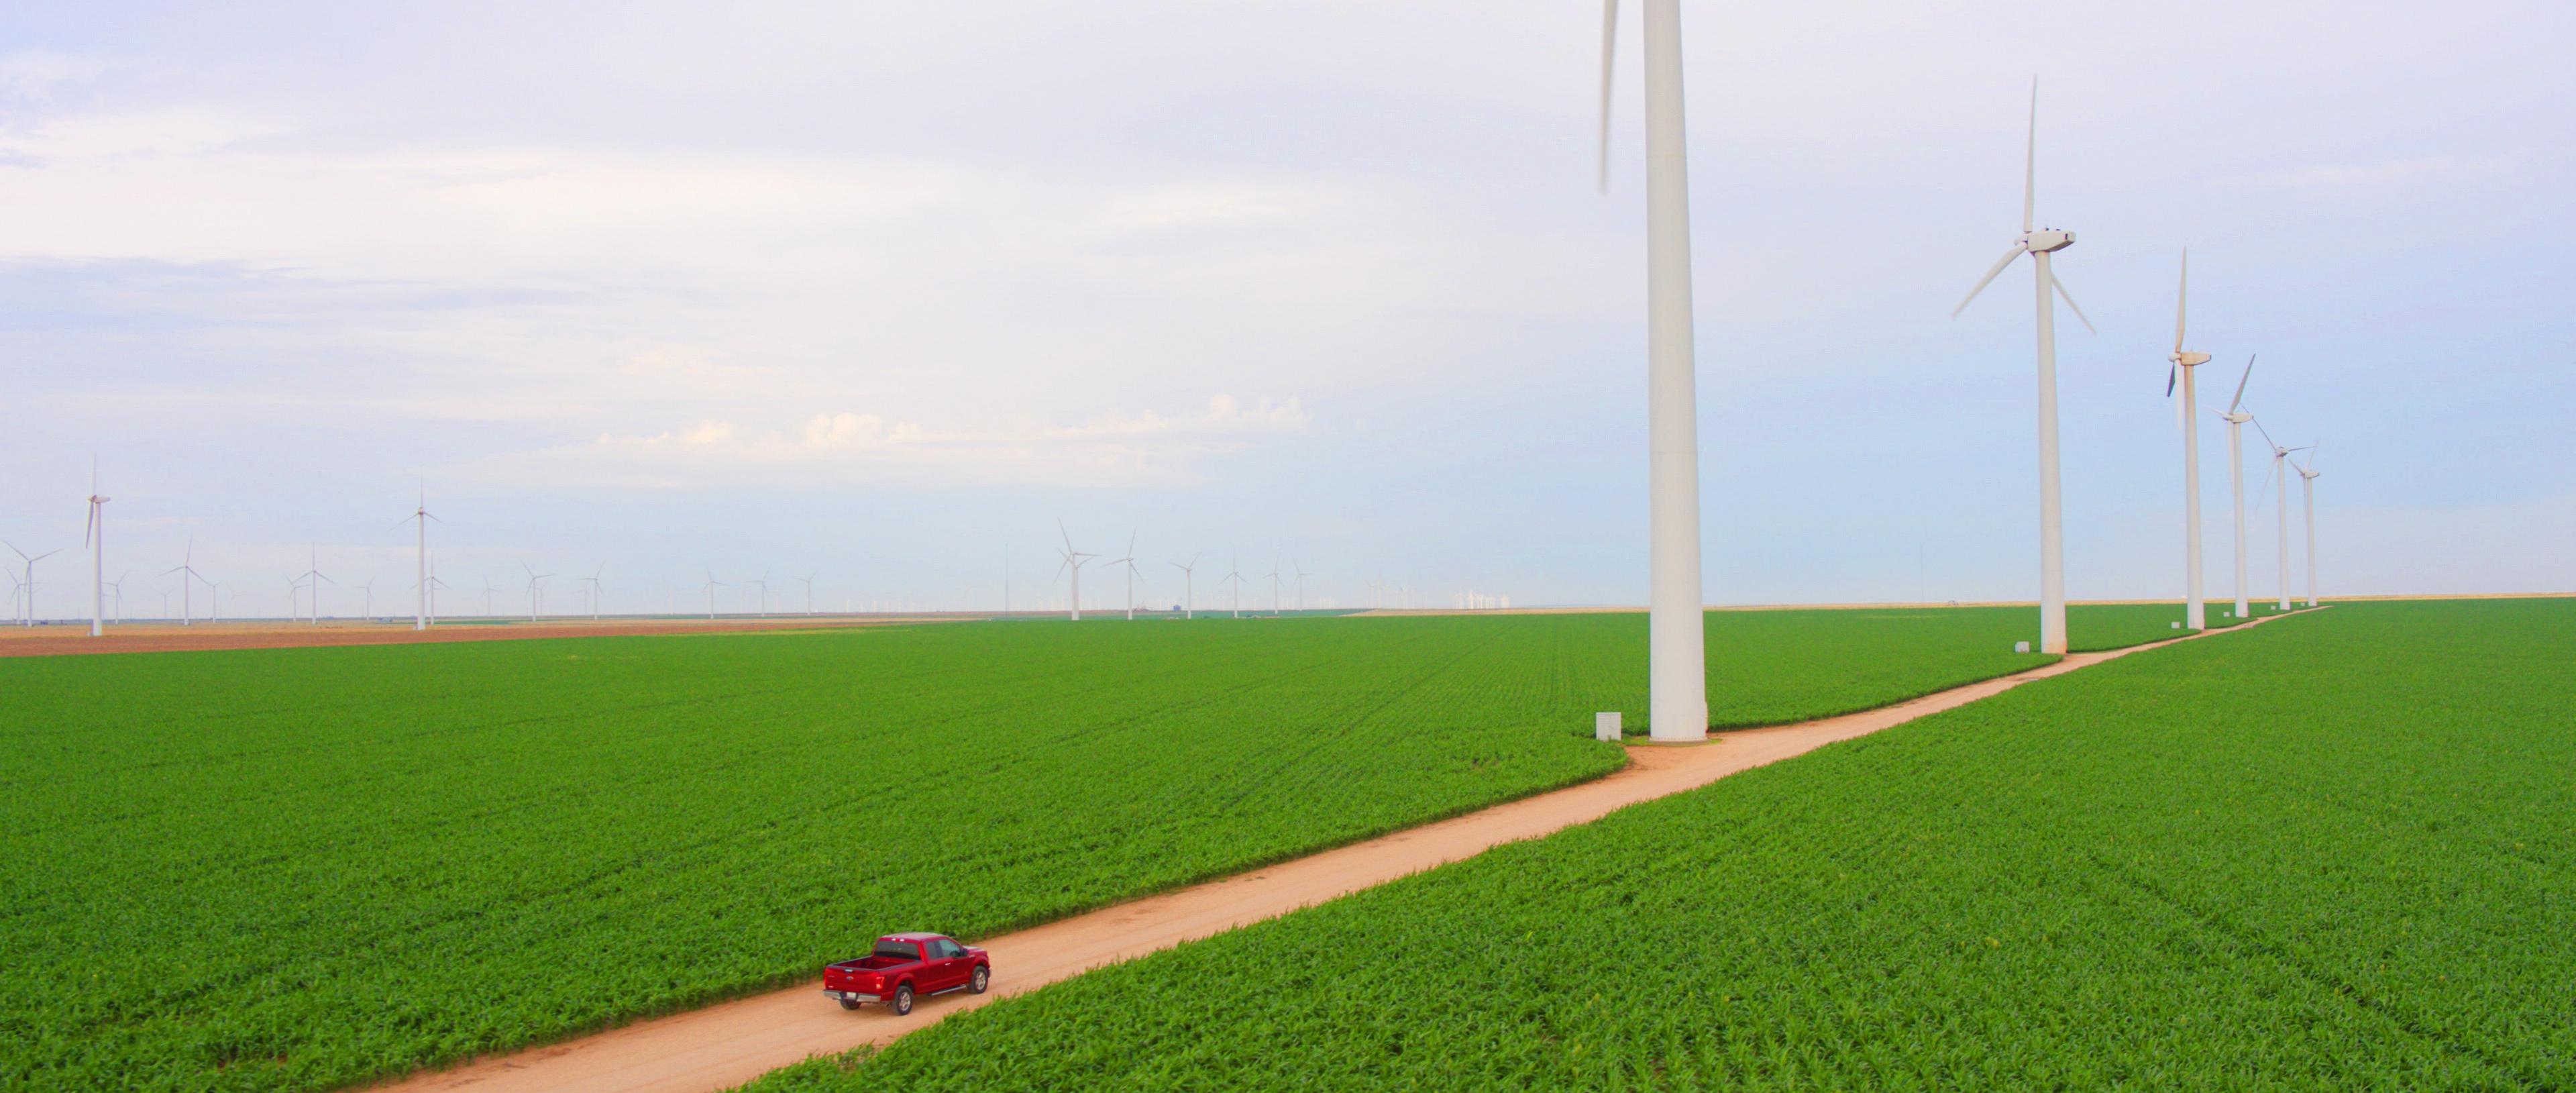 The Growing Role of Wind Power in America